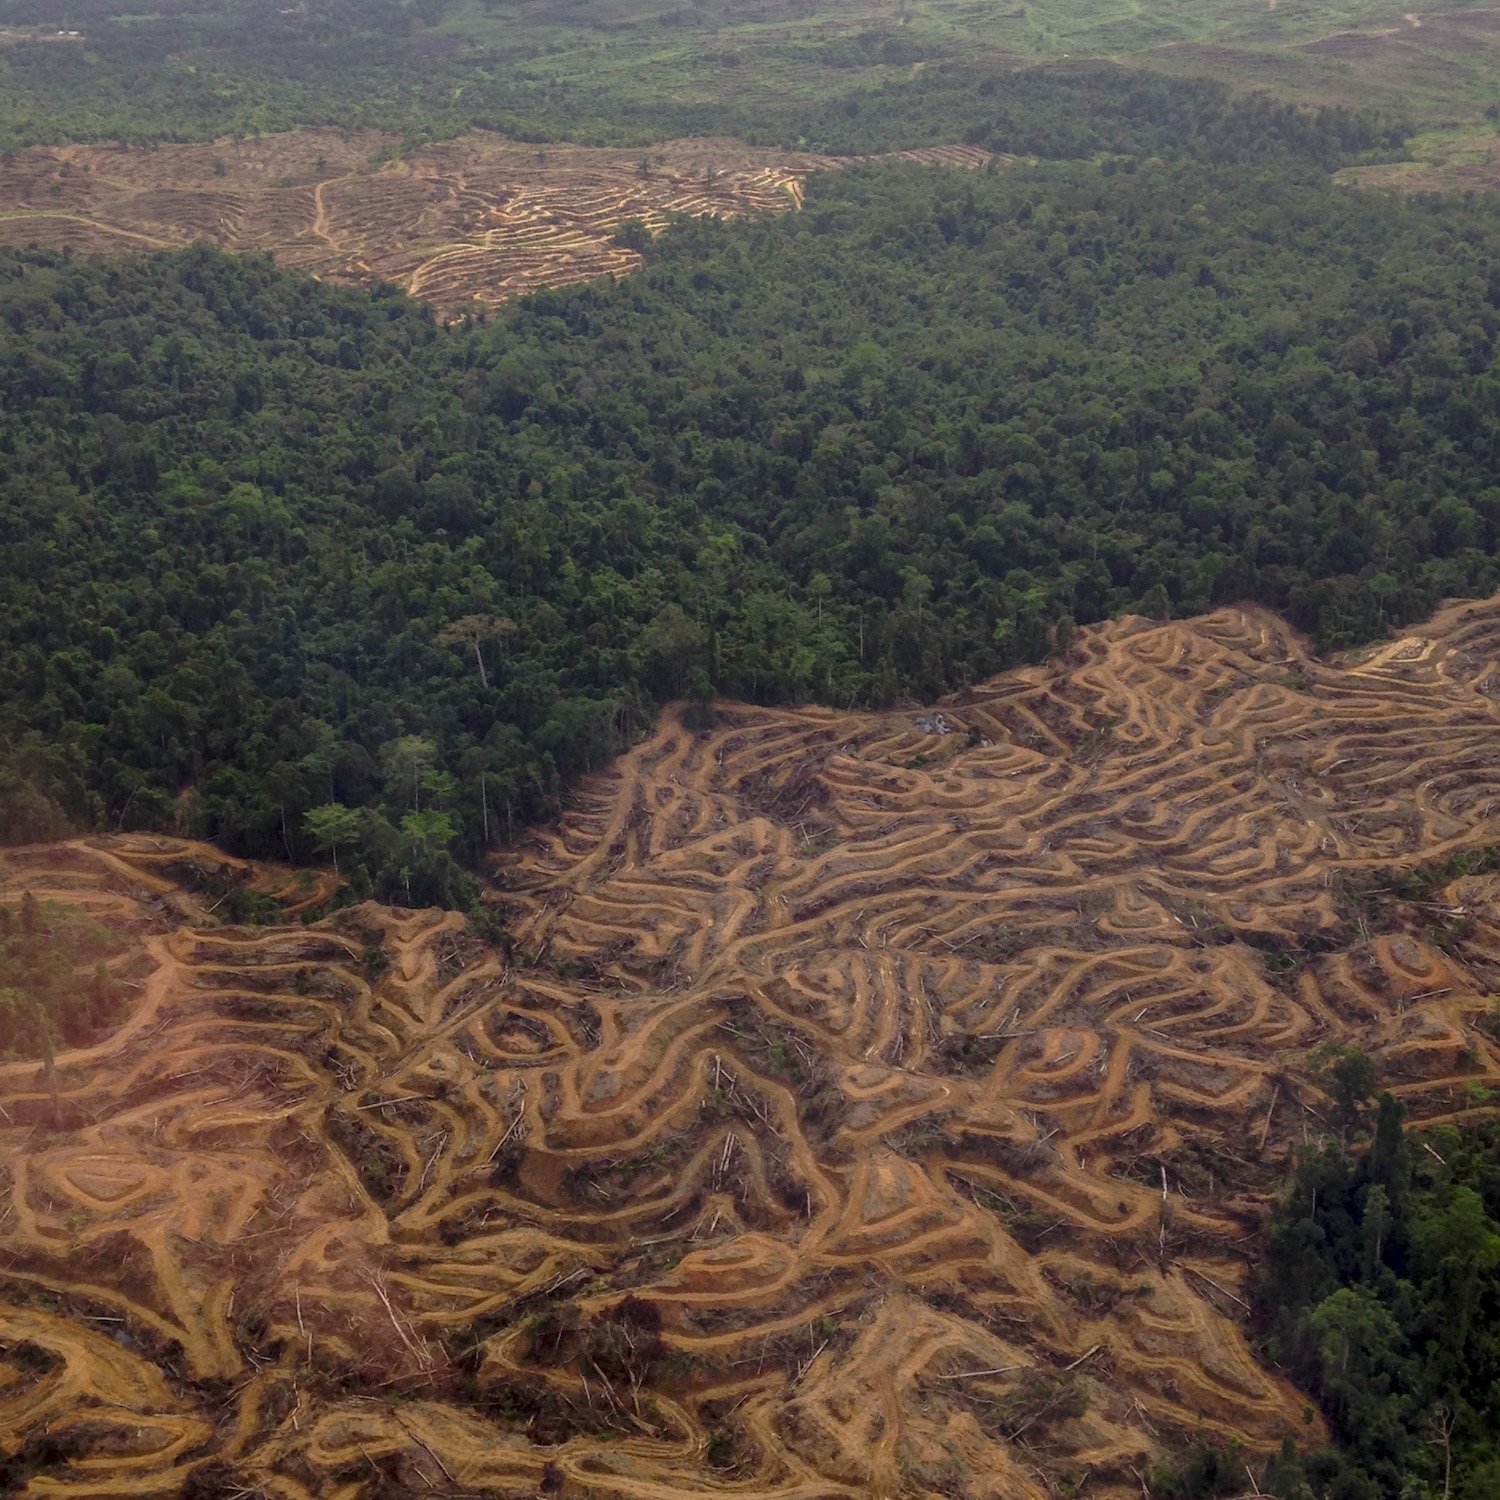 LeuserEcosystemDeforestation_June2015.jpeg